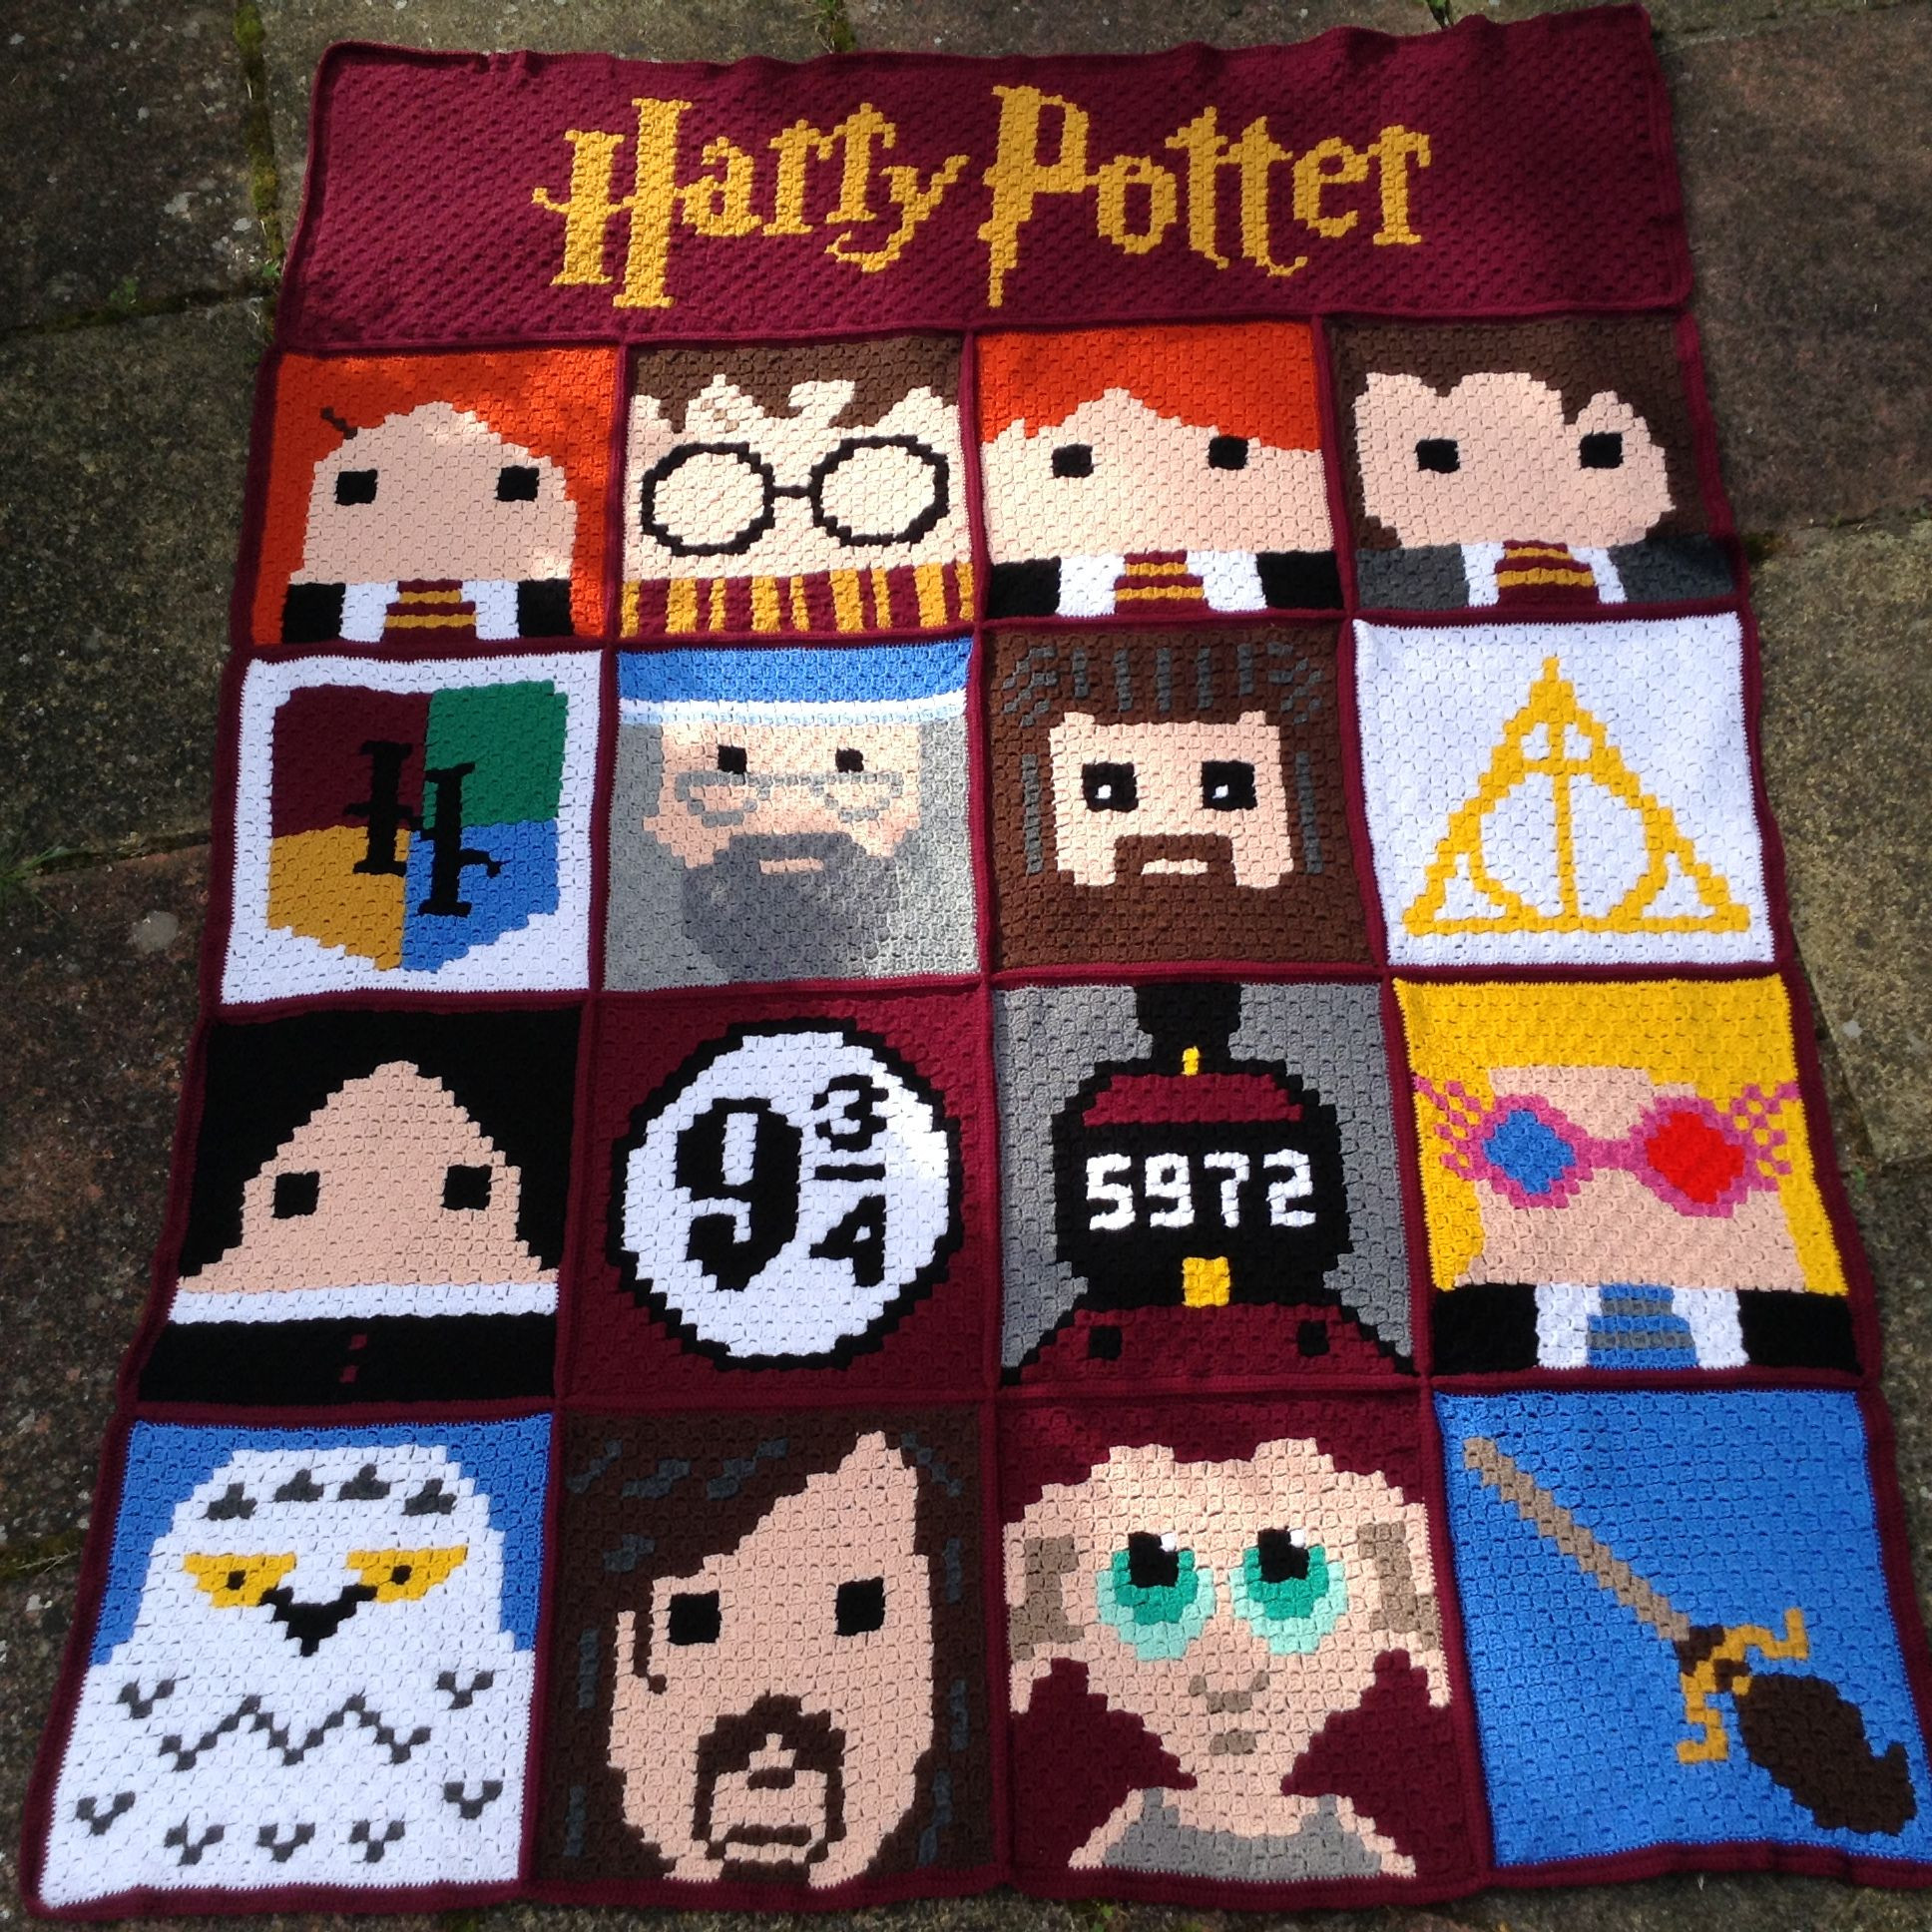 Awesome Harry Potter C2c Blanket 3 Months In the Making Mostly Harry Potter Crochet Blanket Of Luxury 42 Models Harry Potter Crochet Blanket